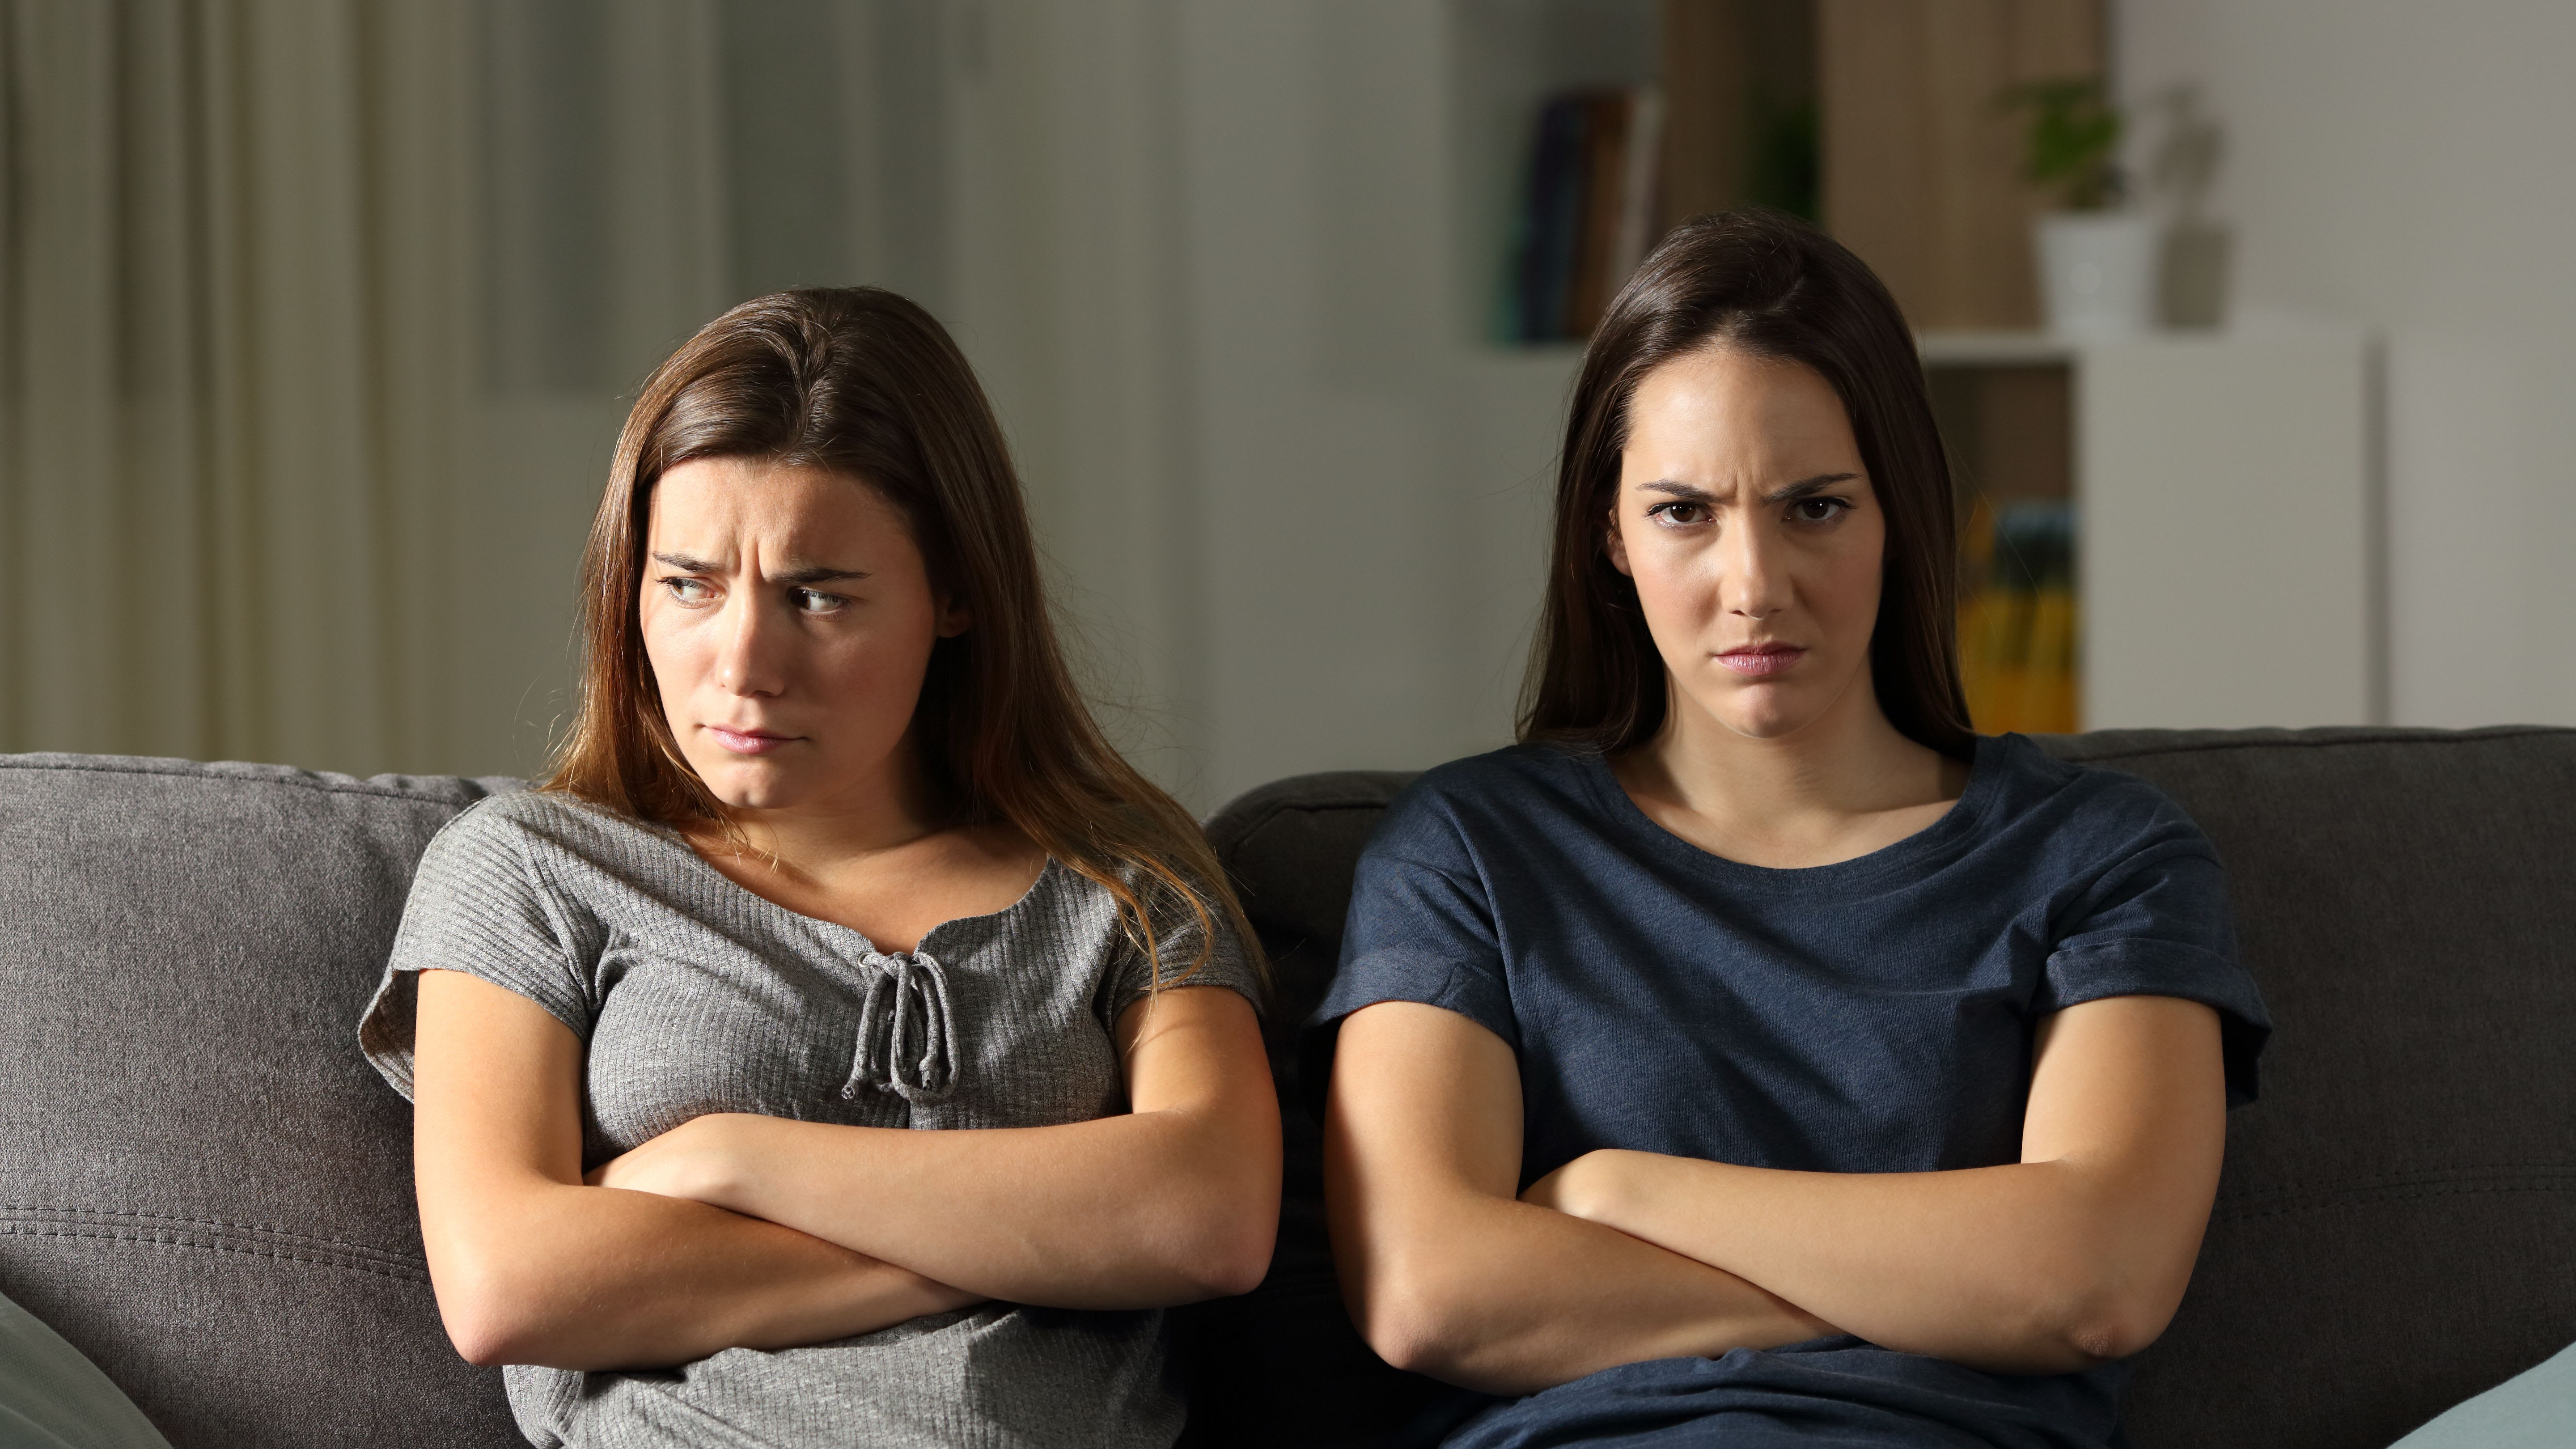 Toxic Friends? Not-So-Obvious Signs You Have an Unhealthy